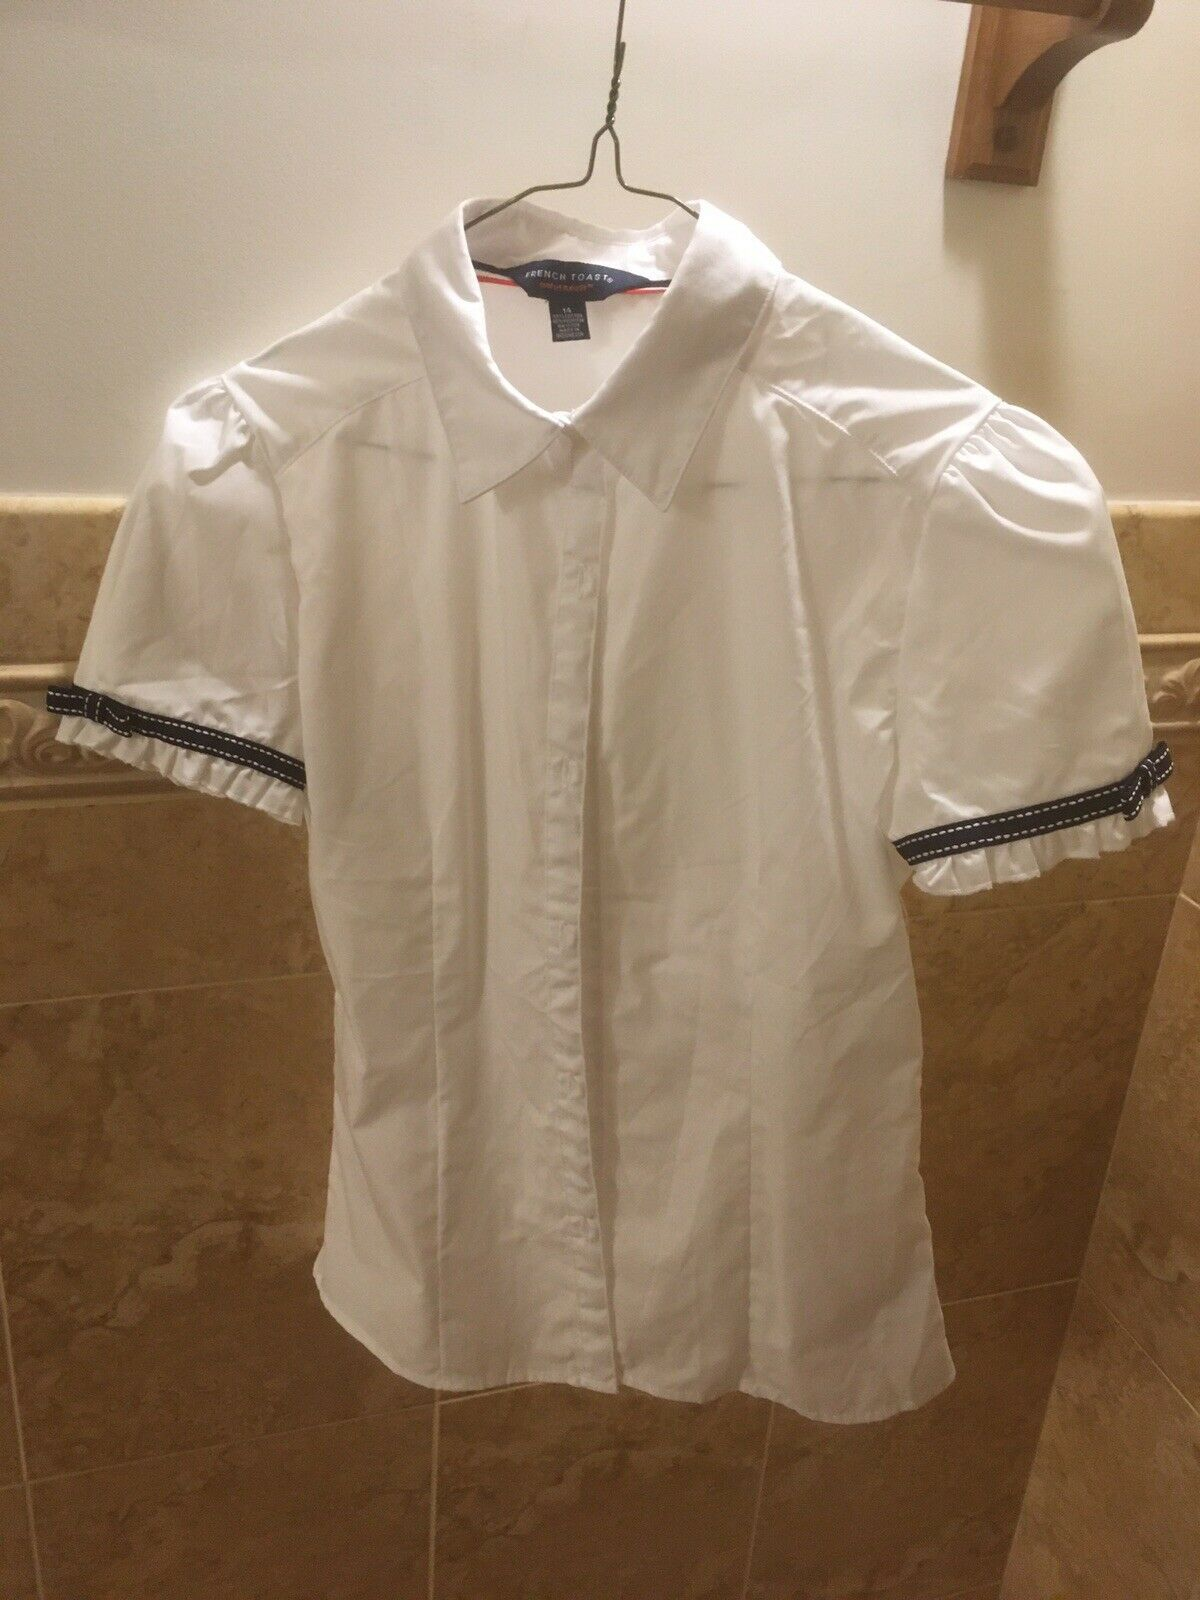 Primary image for NWOT French Toast Girls White Uniform Shirt Size 14 With Blue Trim On The Sleeve